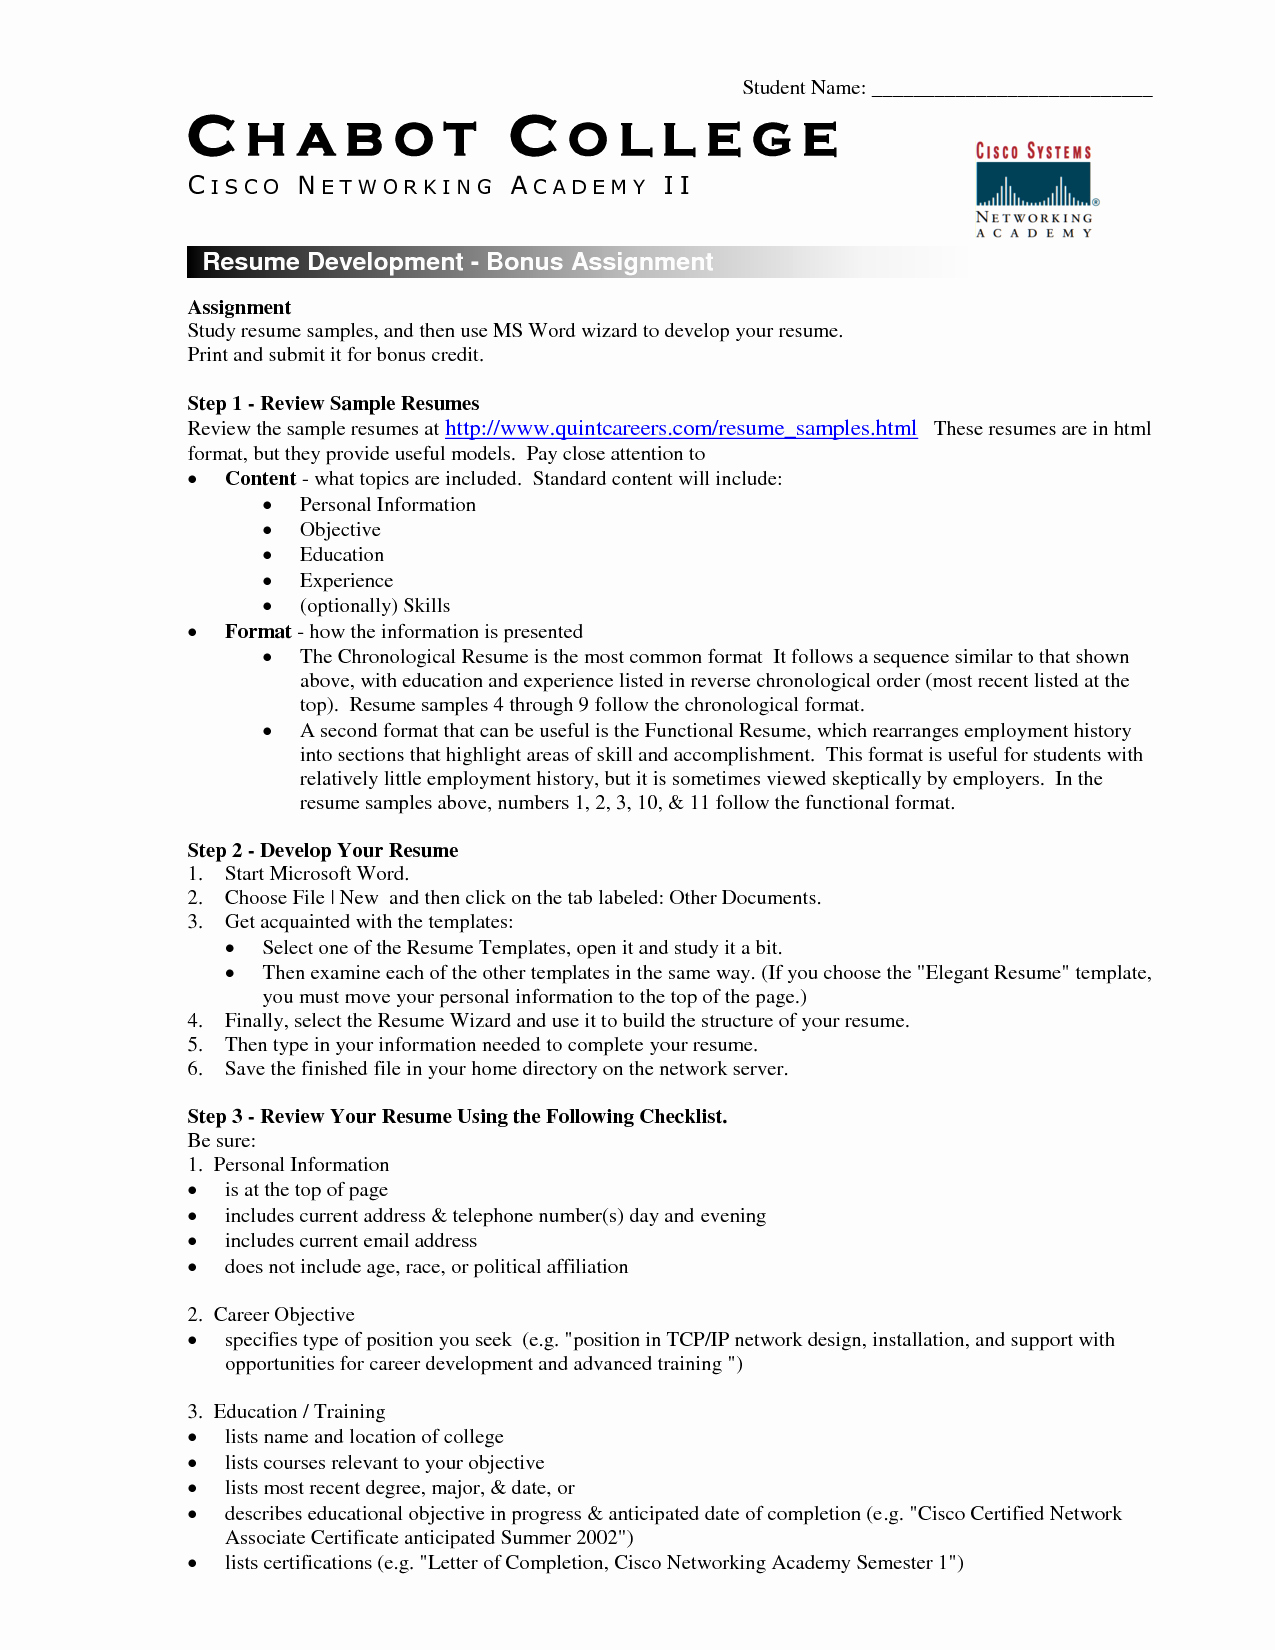 Ms Word Templates for Resume New College Student Resume Template Microsoft Word